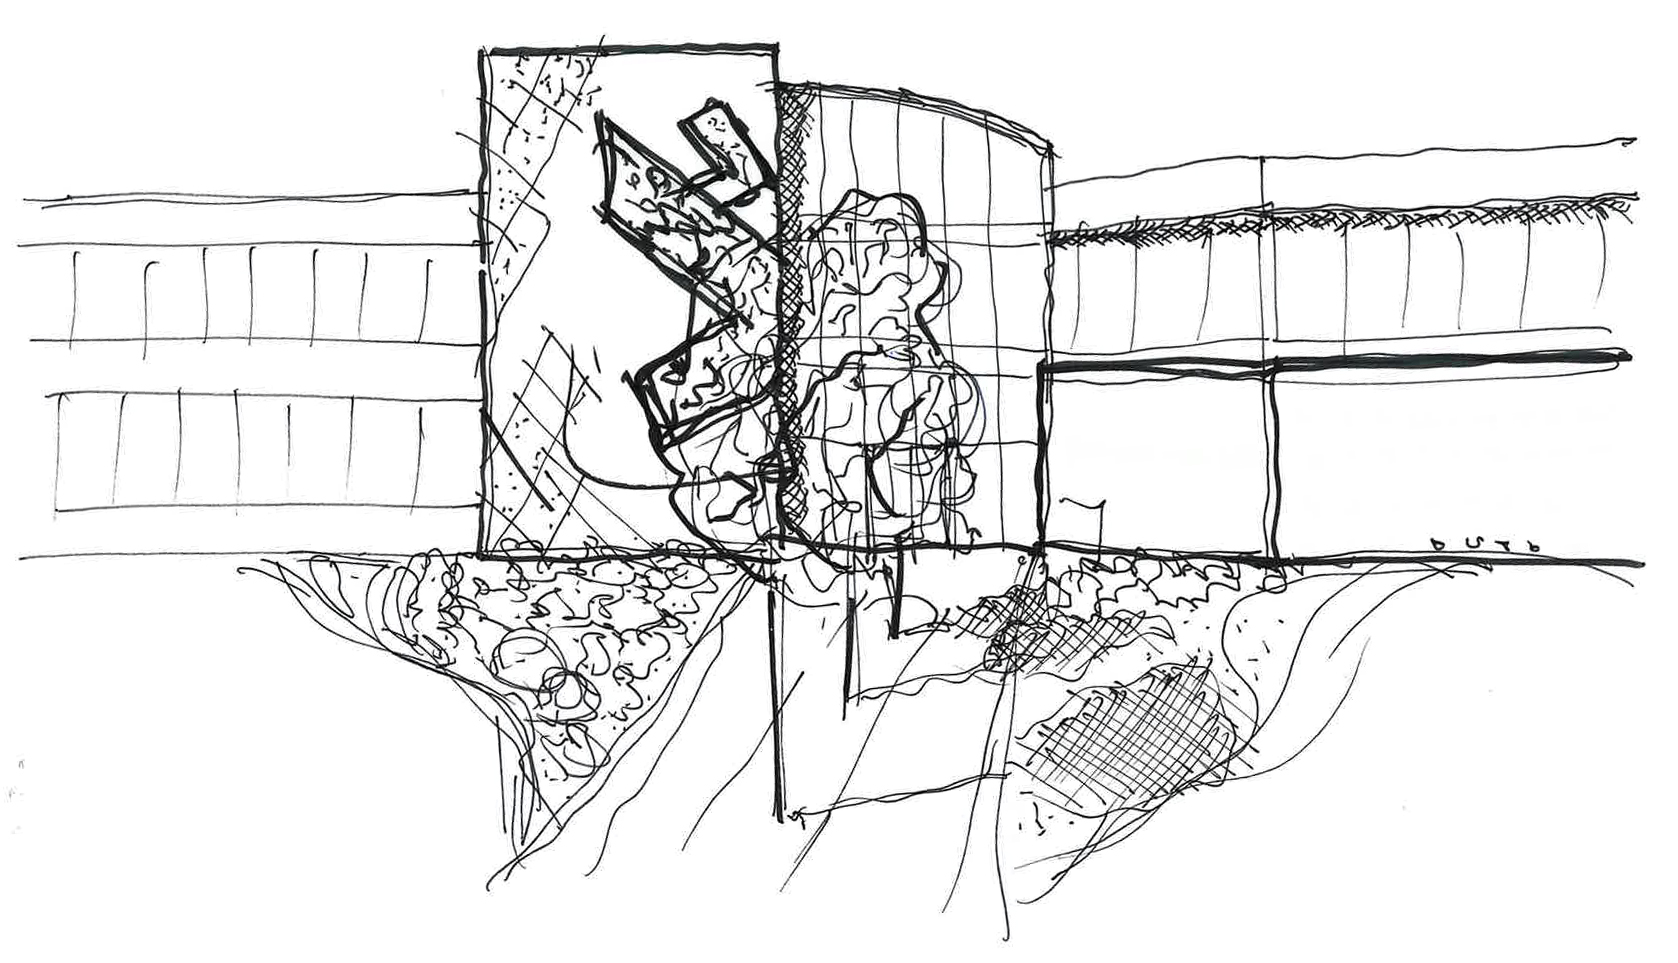 Sketch of the exterior of Ensemble